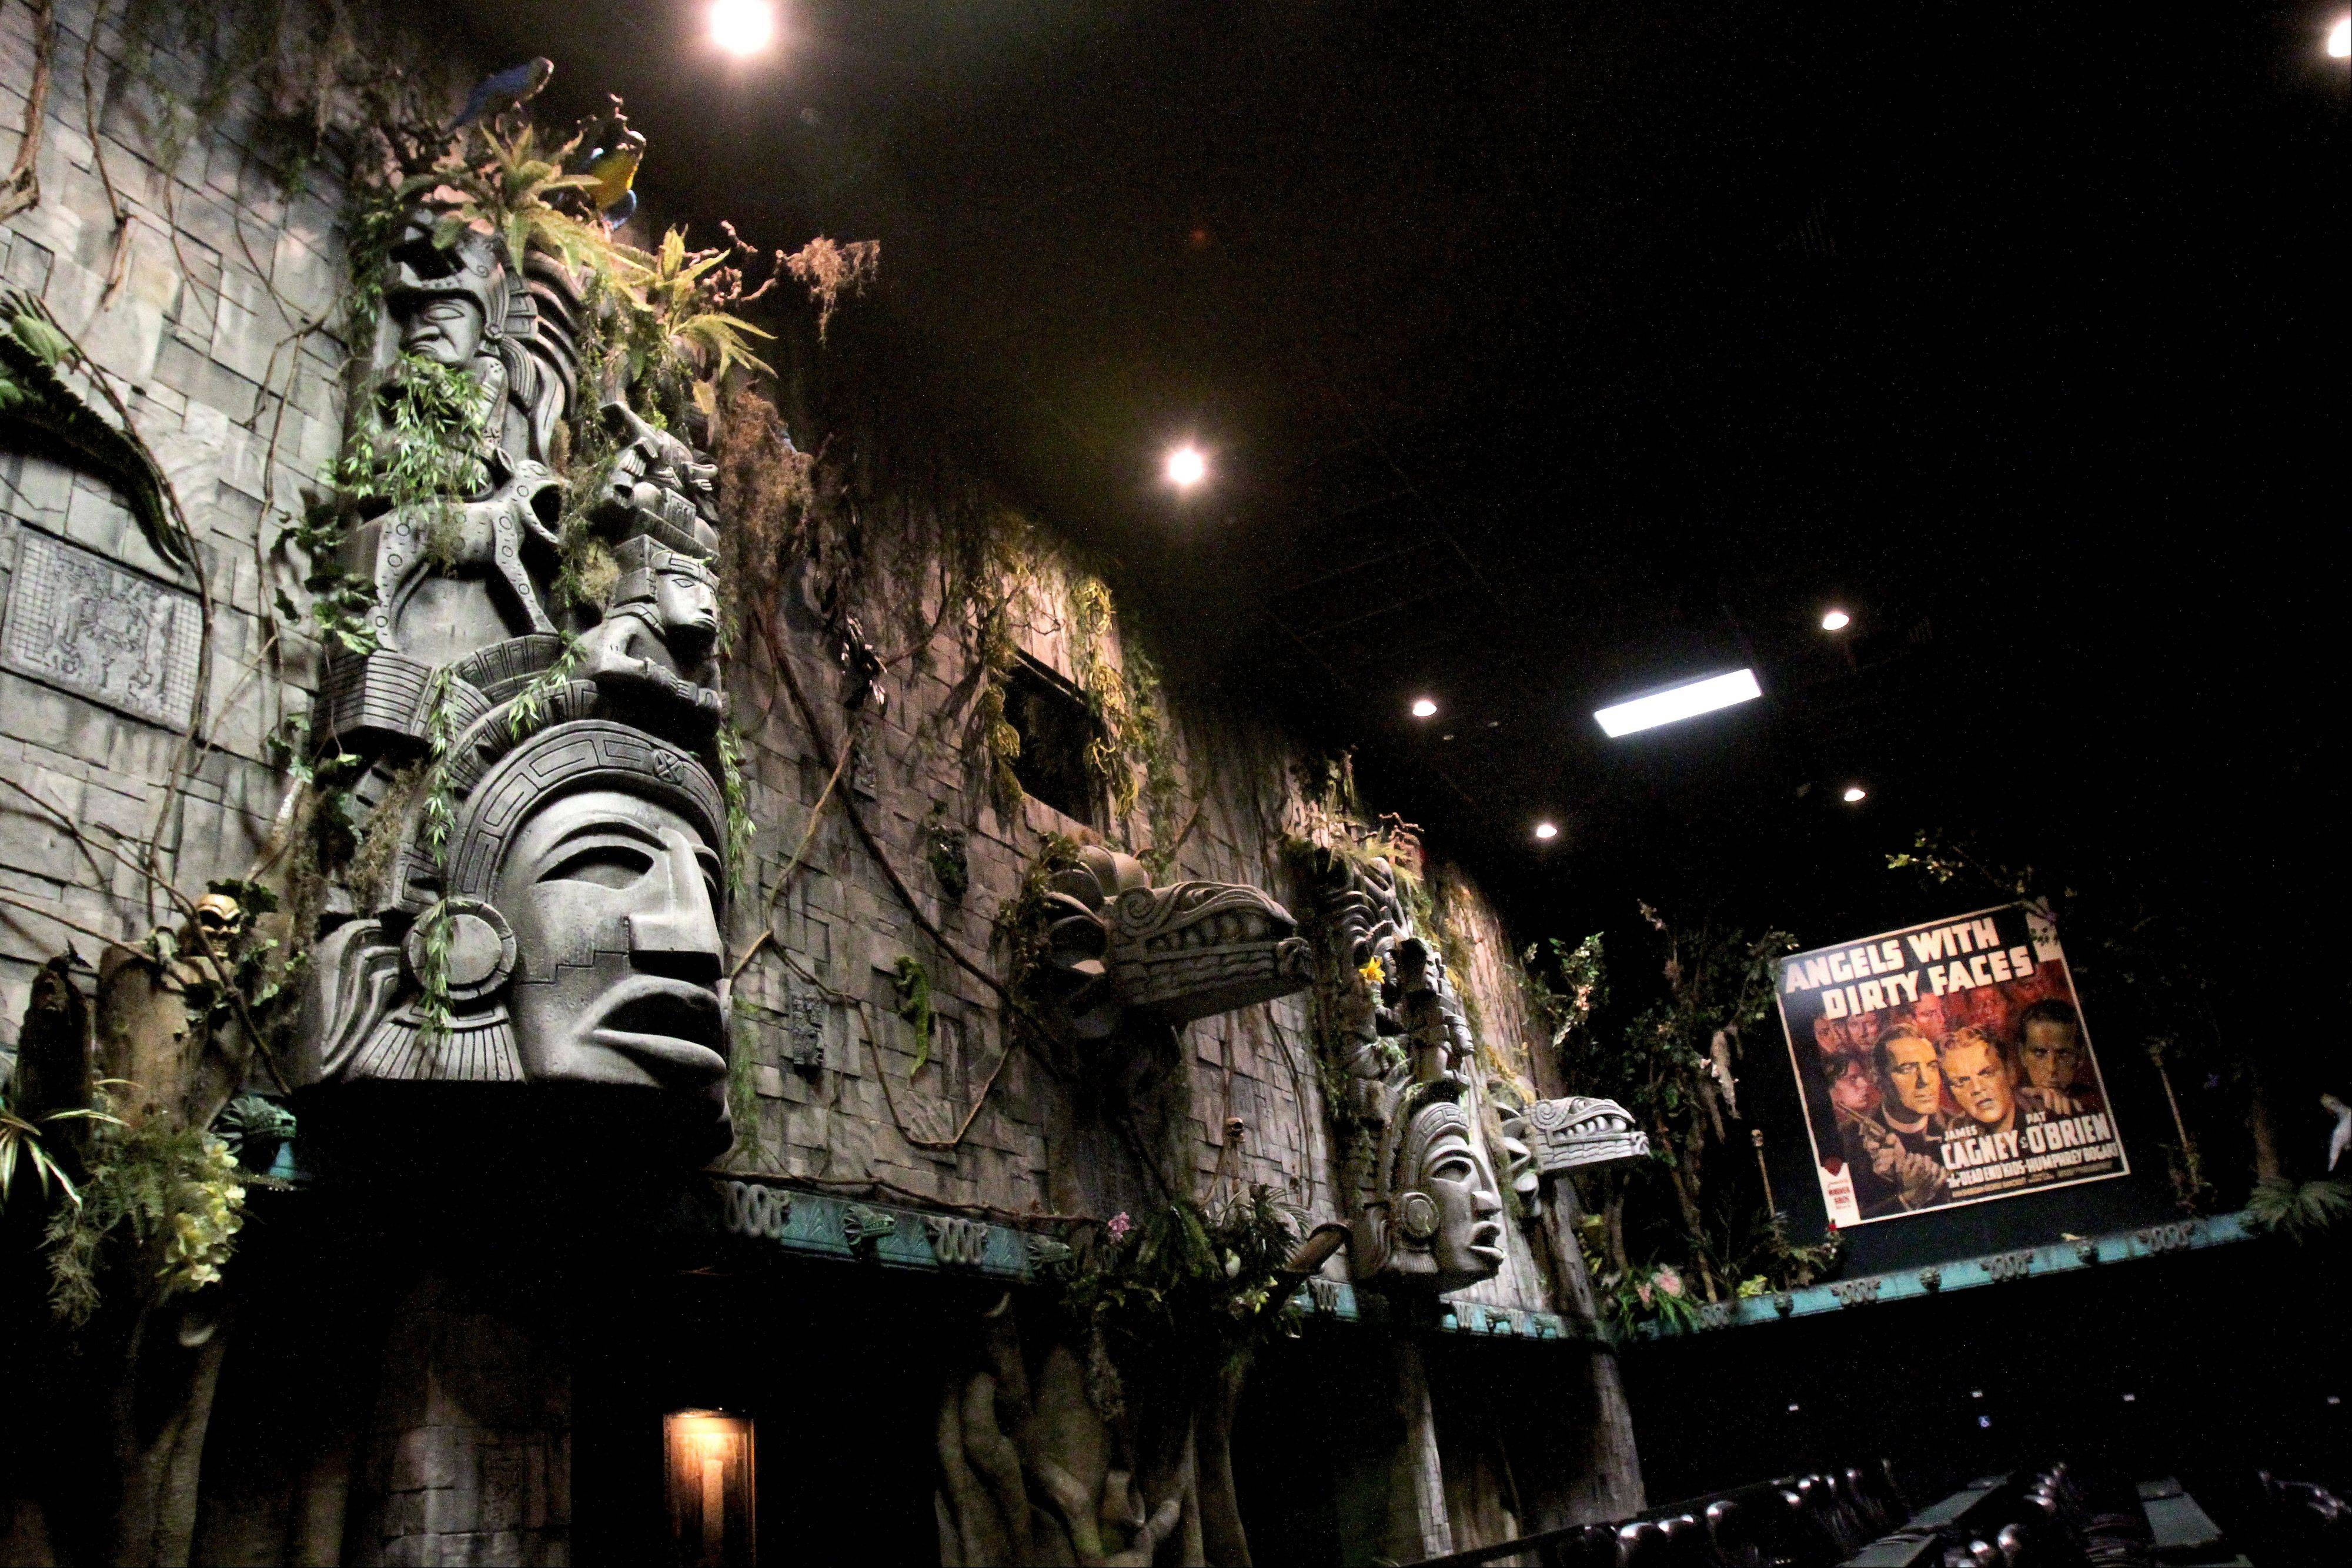 A Mayan themed theater at the Hollywood Palms Cinema in Naperville.